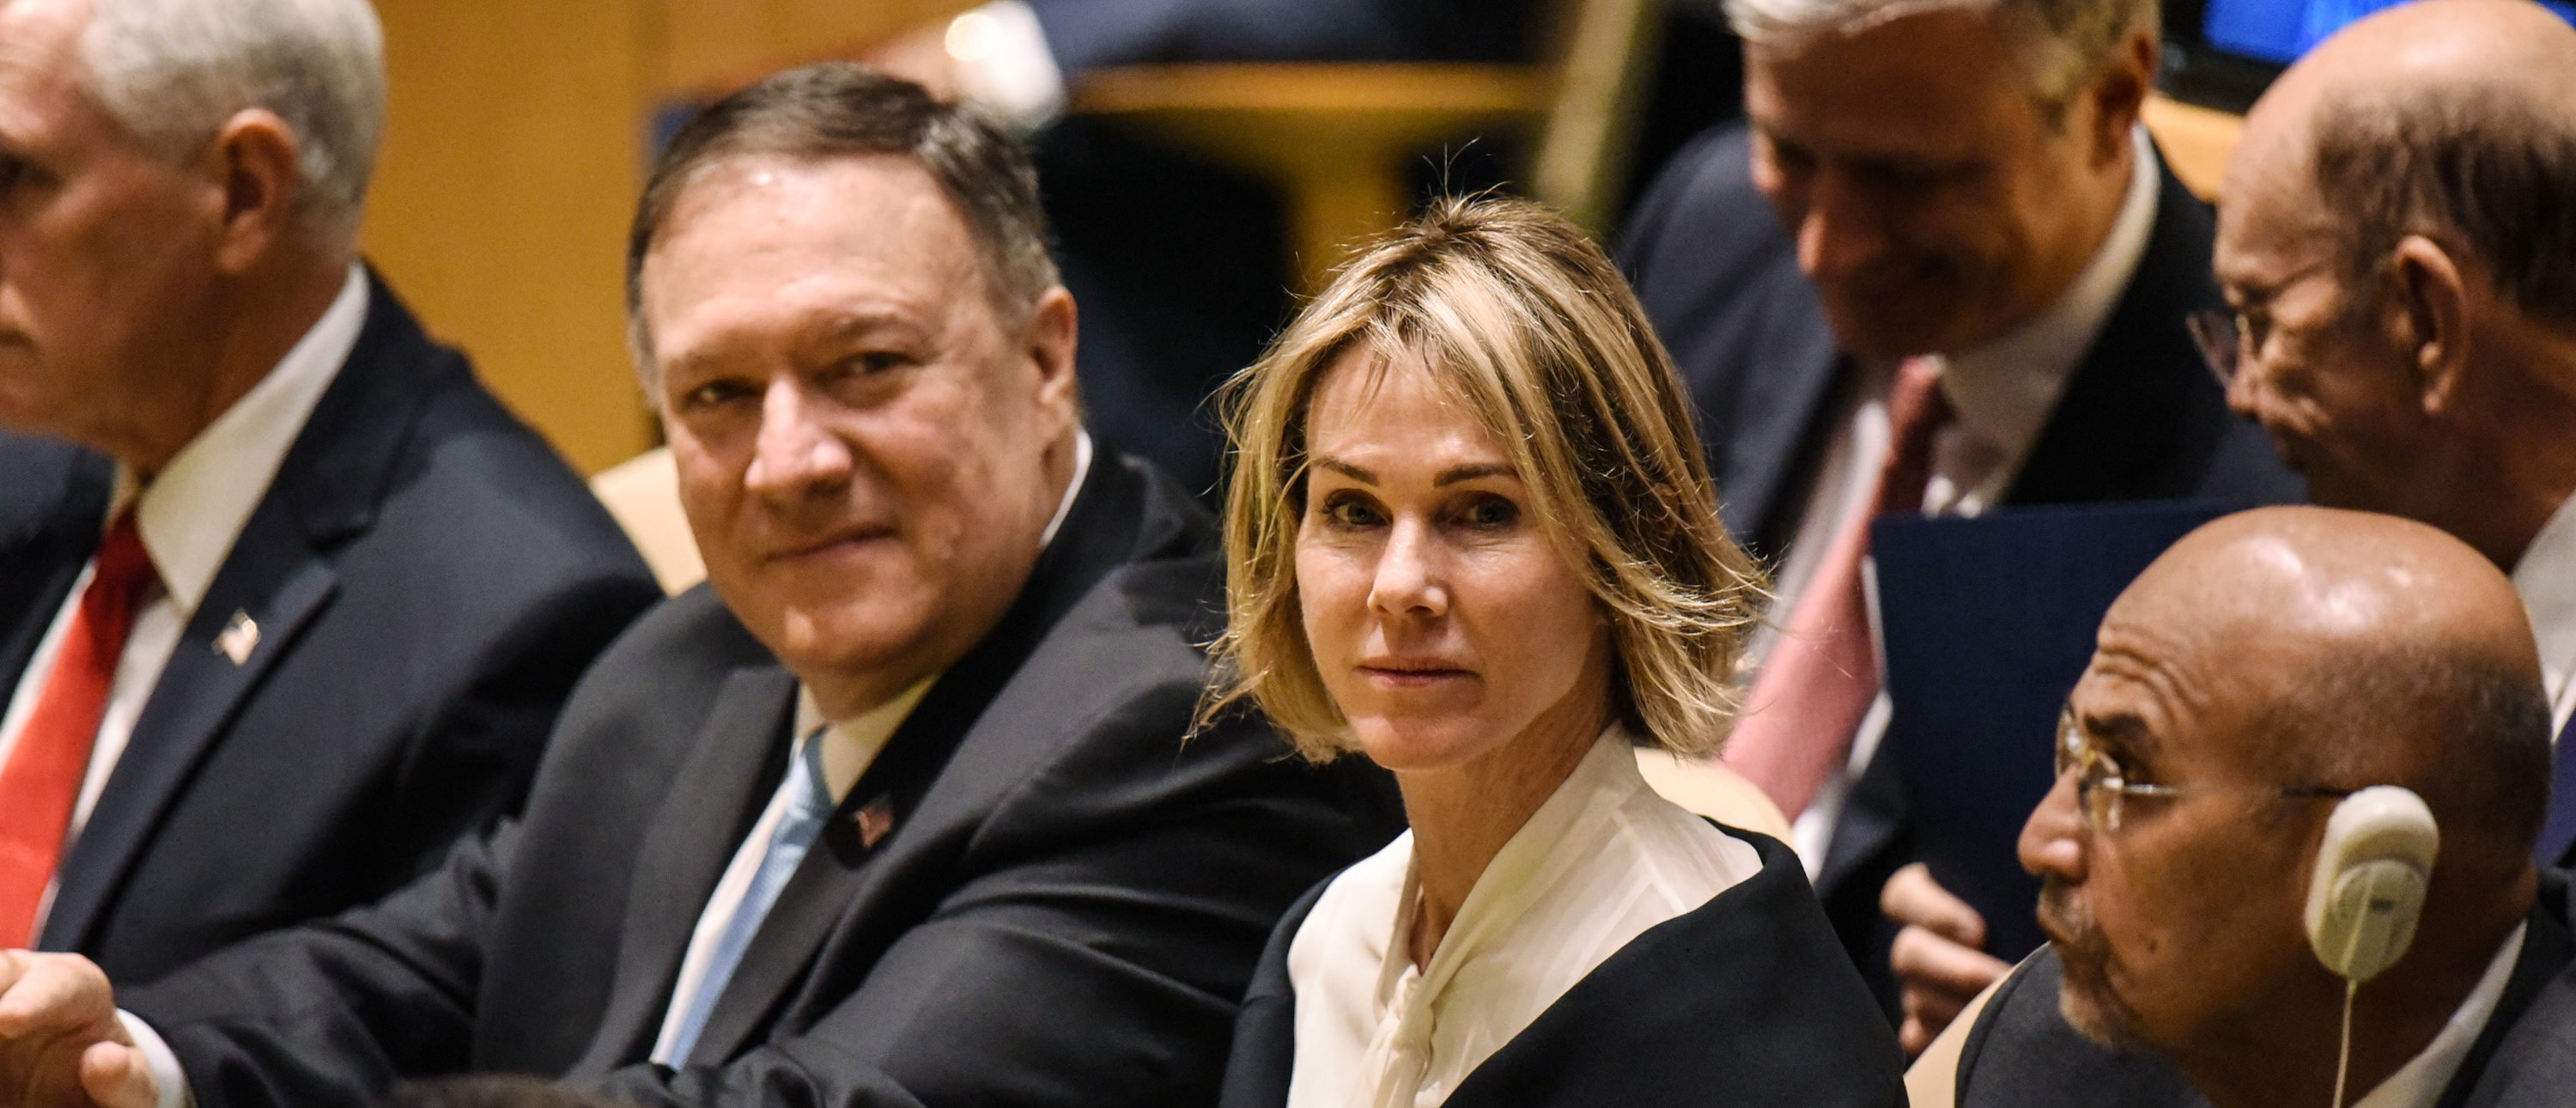 NEW YORK, NY - SEPTEMBER 24: U.S. Secretary of State Mike Pompeo (R) and U.S. Ambassador to the U.N. Kelly Craft attend the United Nations (U.N.) General Assembly on September 24, 2019 in New York City. World leaders are gathered for the 74th session of the UN amid a warning by Secretary-General Antonio Guterres in his address yesterday of the looming risk of a world splitting between the two largest economies - the U.S. and China. (Photo by Stephanie Keith/Getty Images)